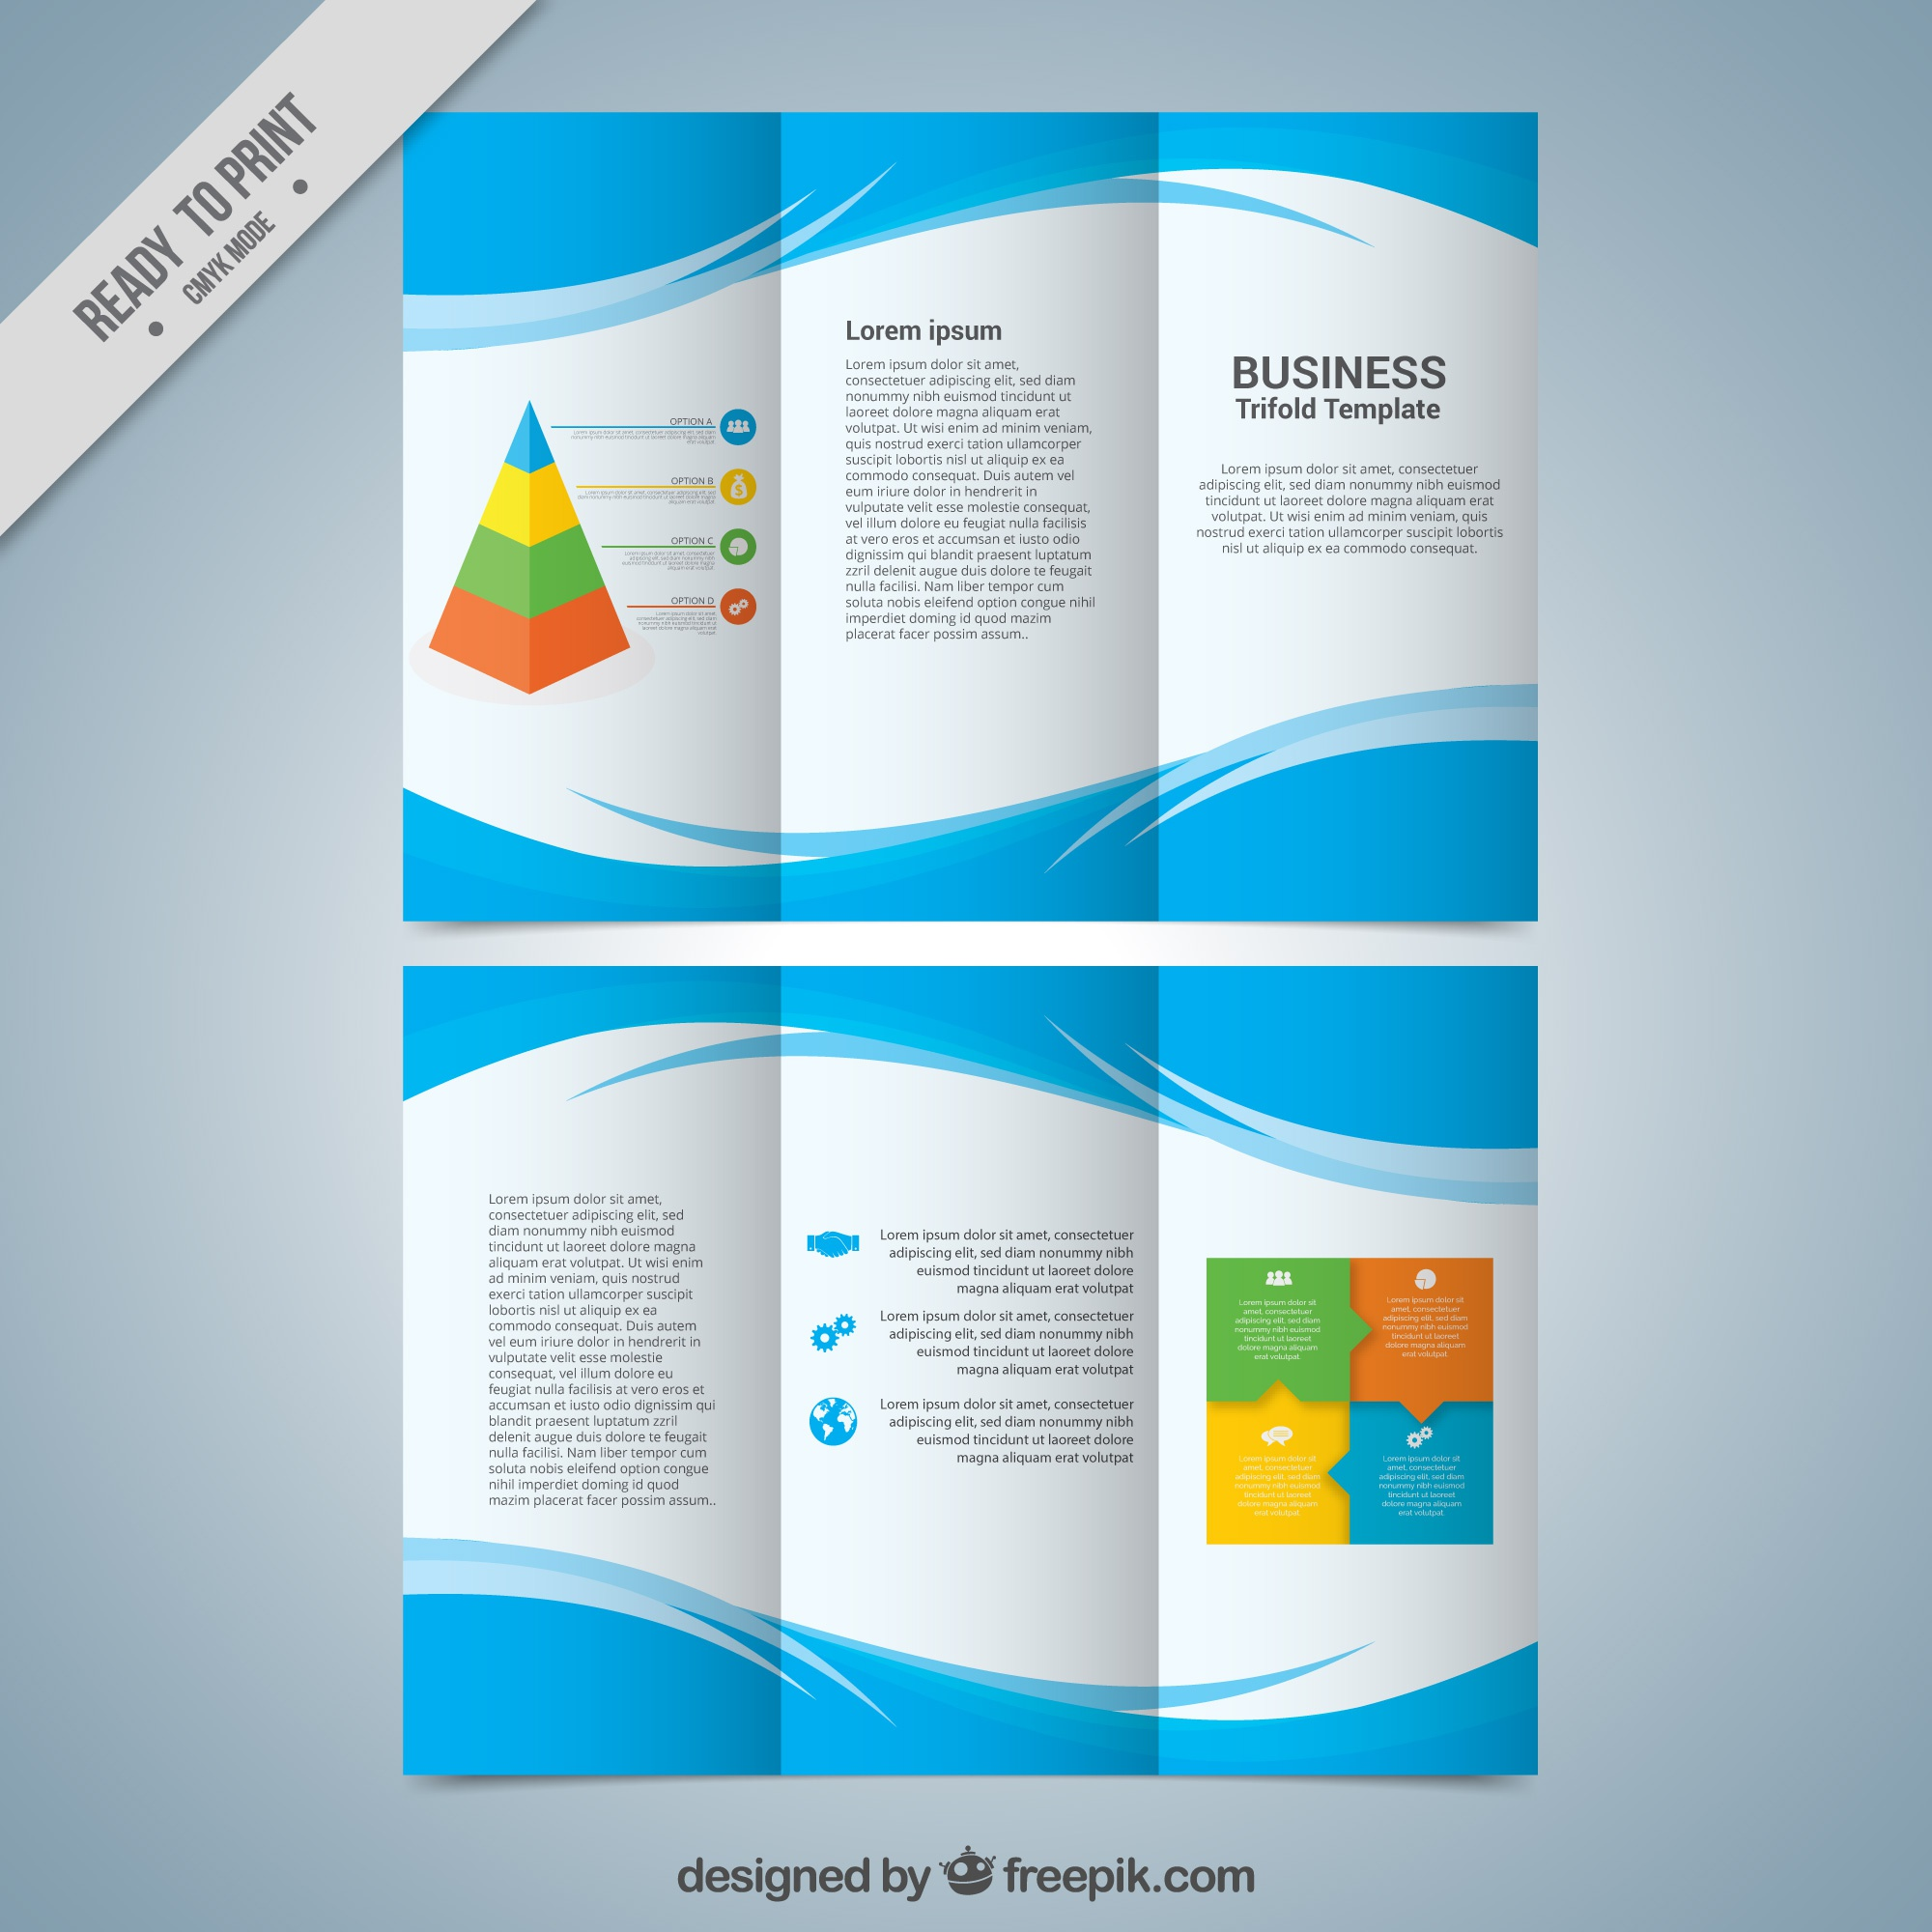 Business trifold template with abstract blue shapes